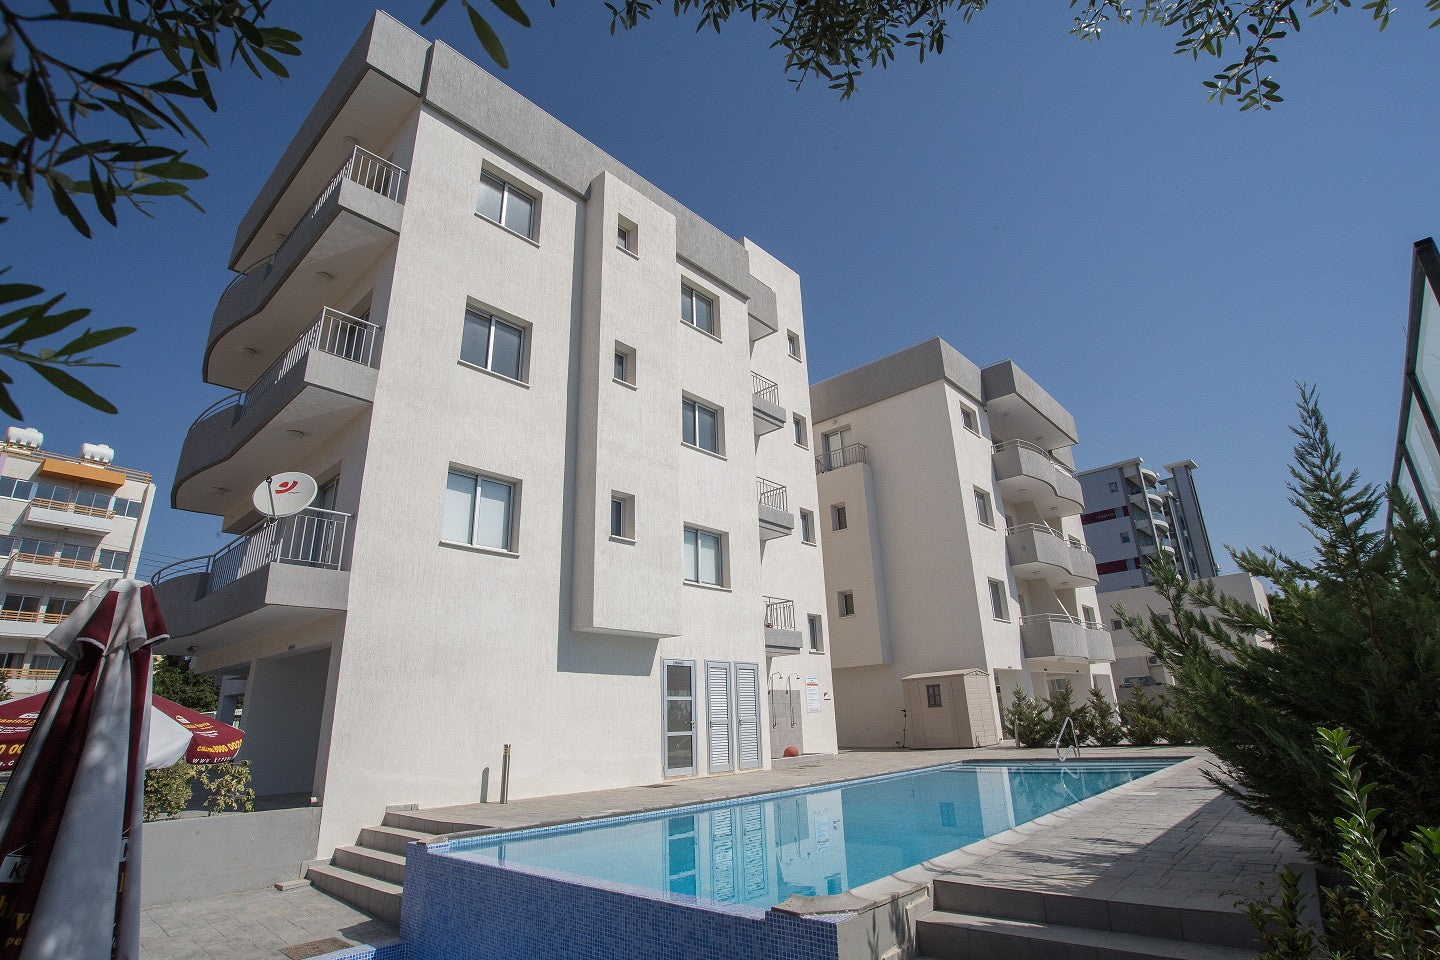 2 Bed Spacious Apartment in Limassol Cyprus with EU Residency